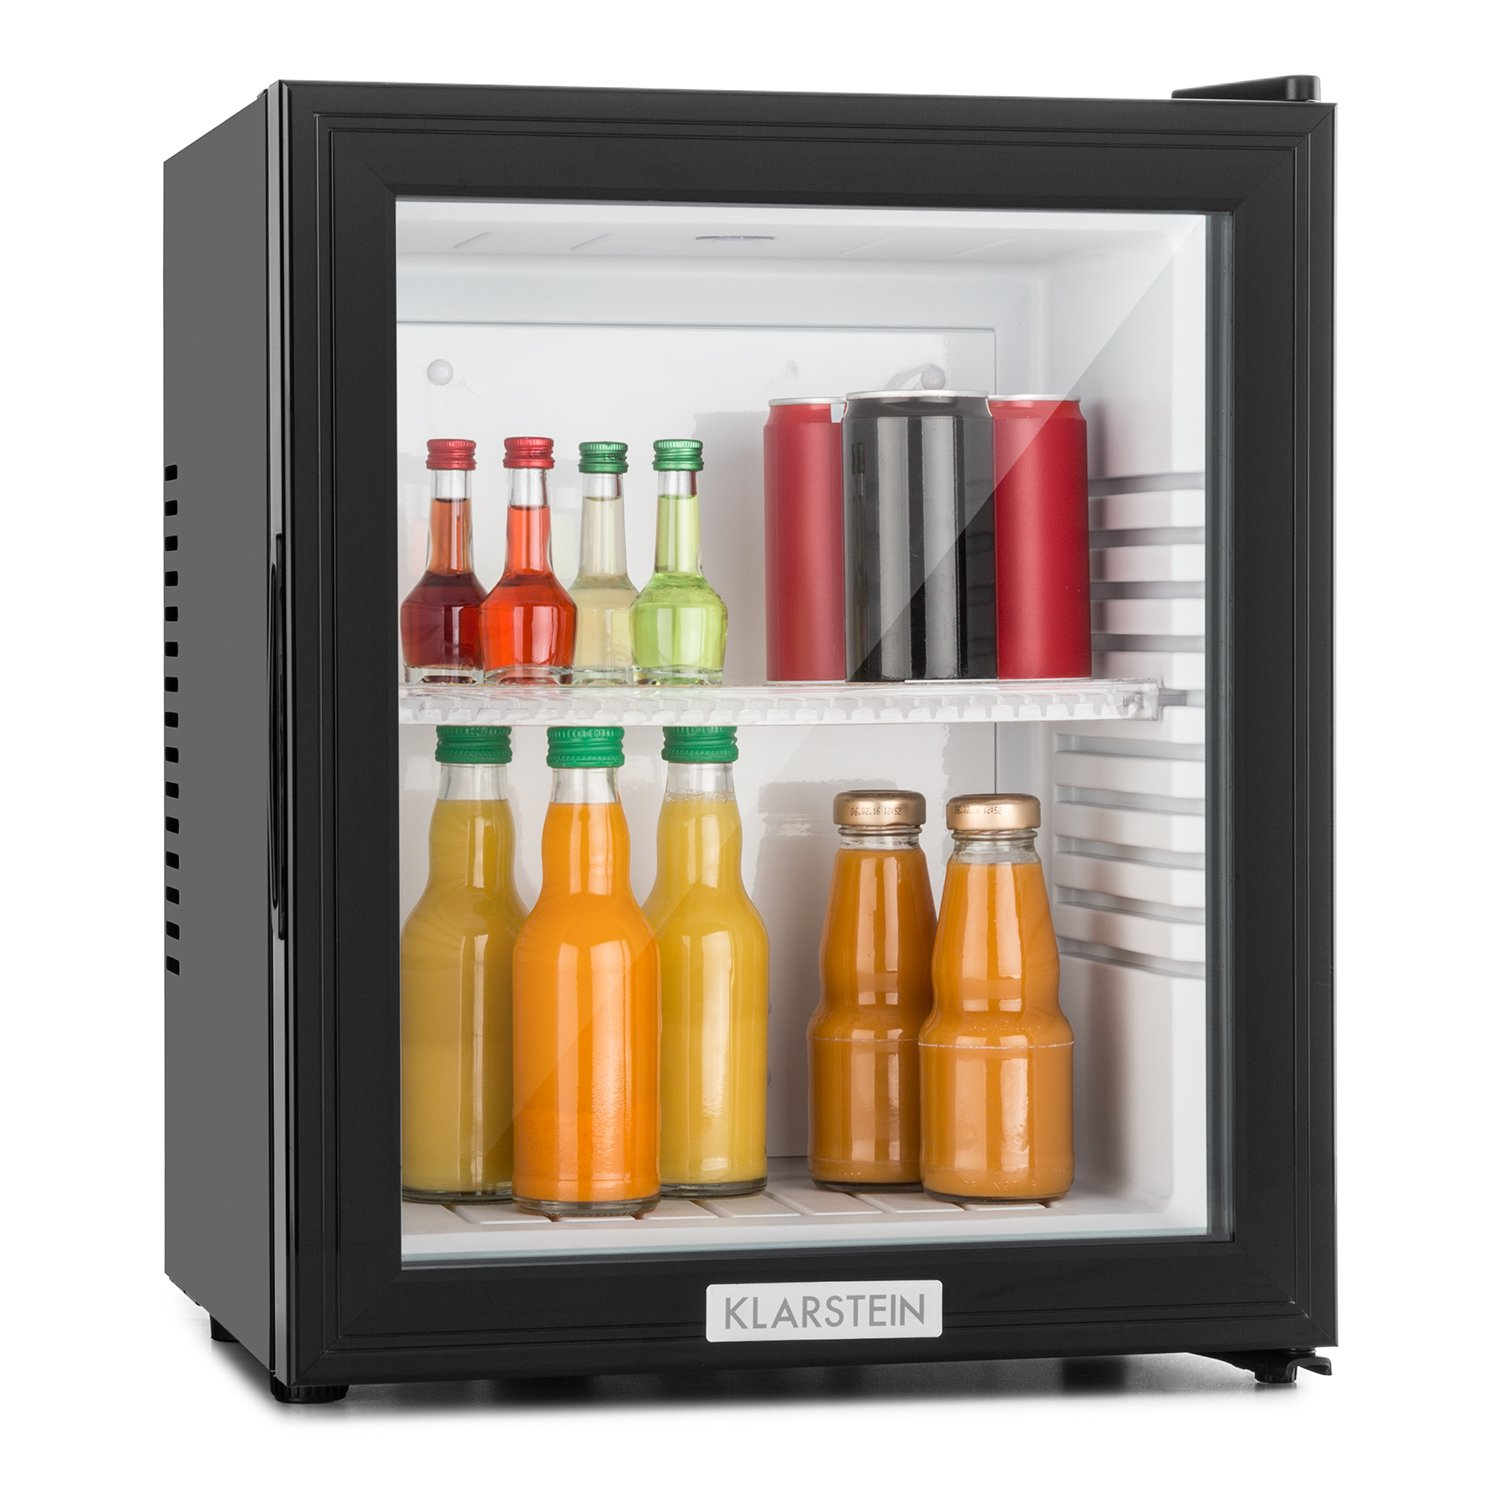 Klarstein MKS-12 Mini Bar Refrigerator Cooler 24 Litre Capacity Fridge 1 Shelf Rack Reversible Door Low Noise Level Quiet Operation Easy to Clean Environmental Friendly Black [Energy Class A]